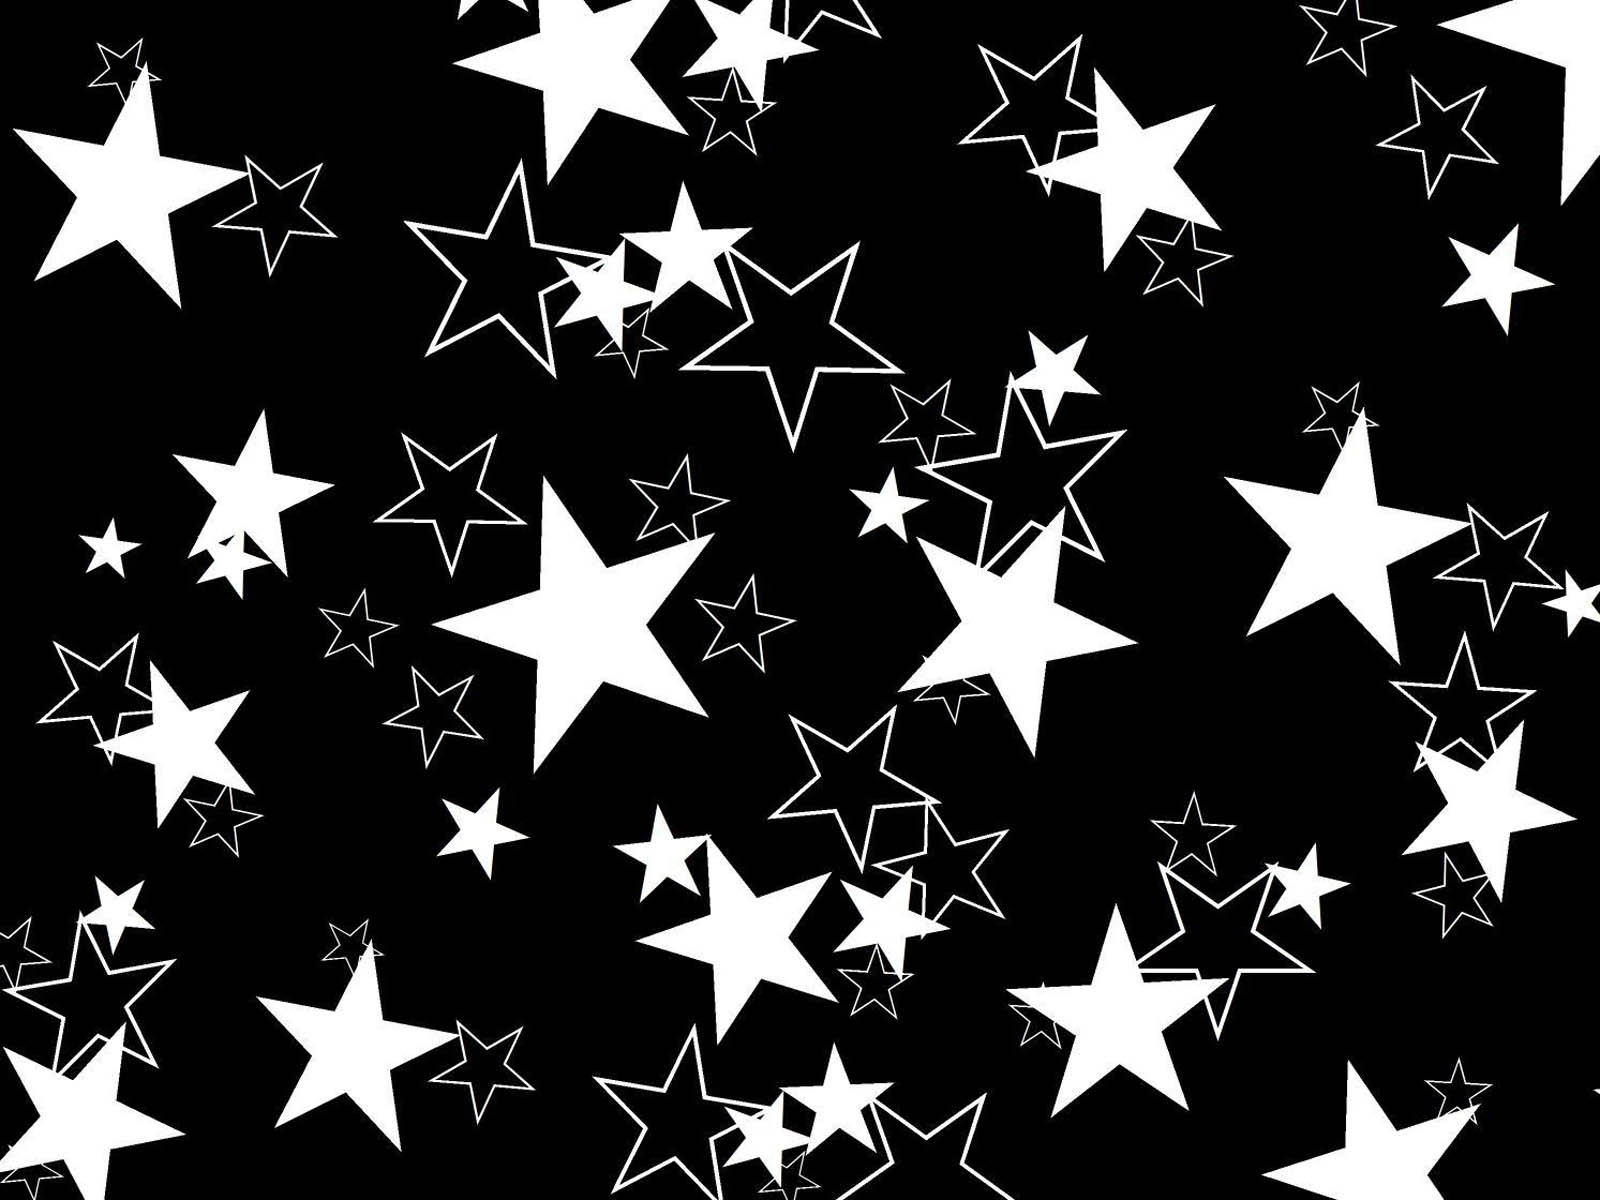 Wallpapers 3d stars wallpapers for Black and white wallpaper 3d